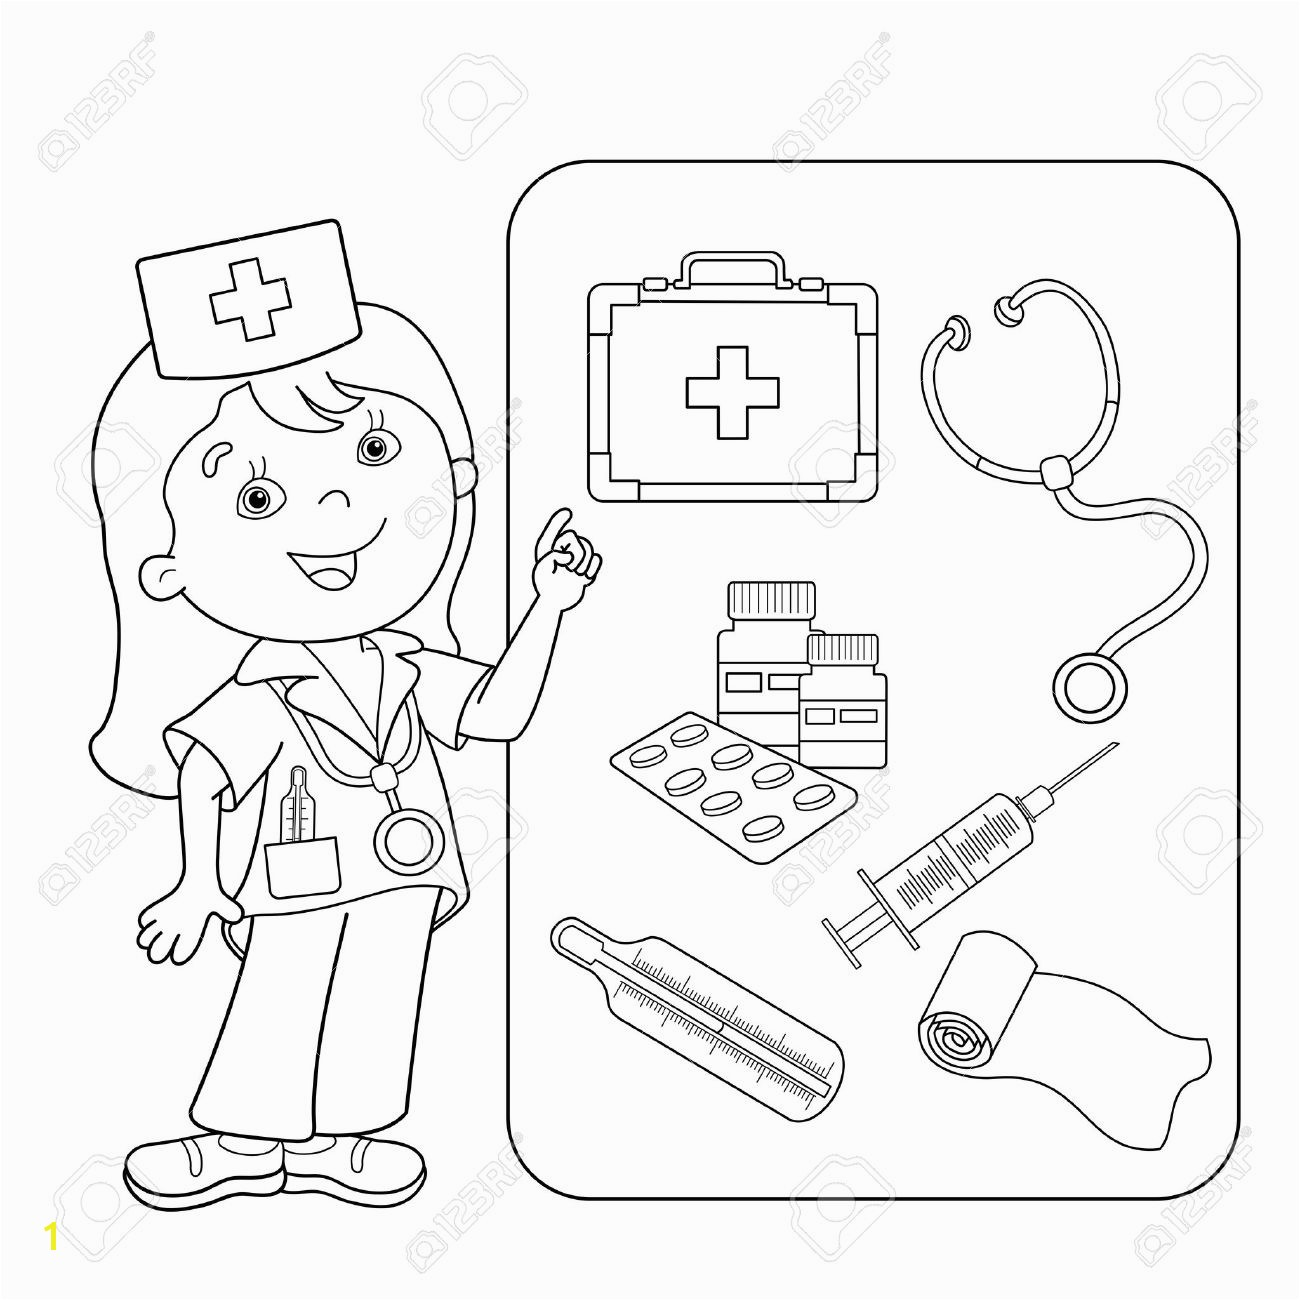 First Aid Coloring Pages for Kids Unique First Aid Coloring Sheet Collection